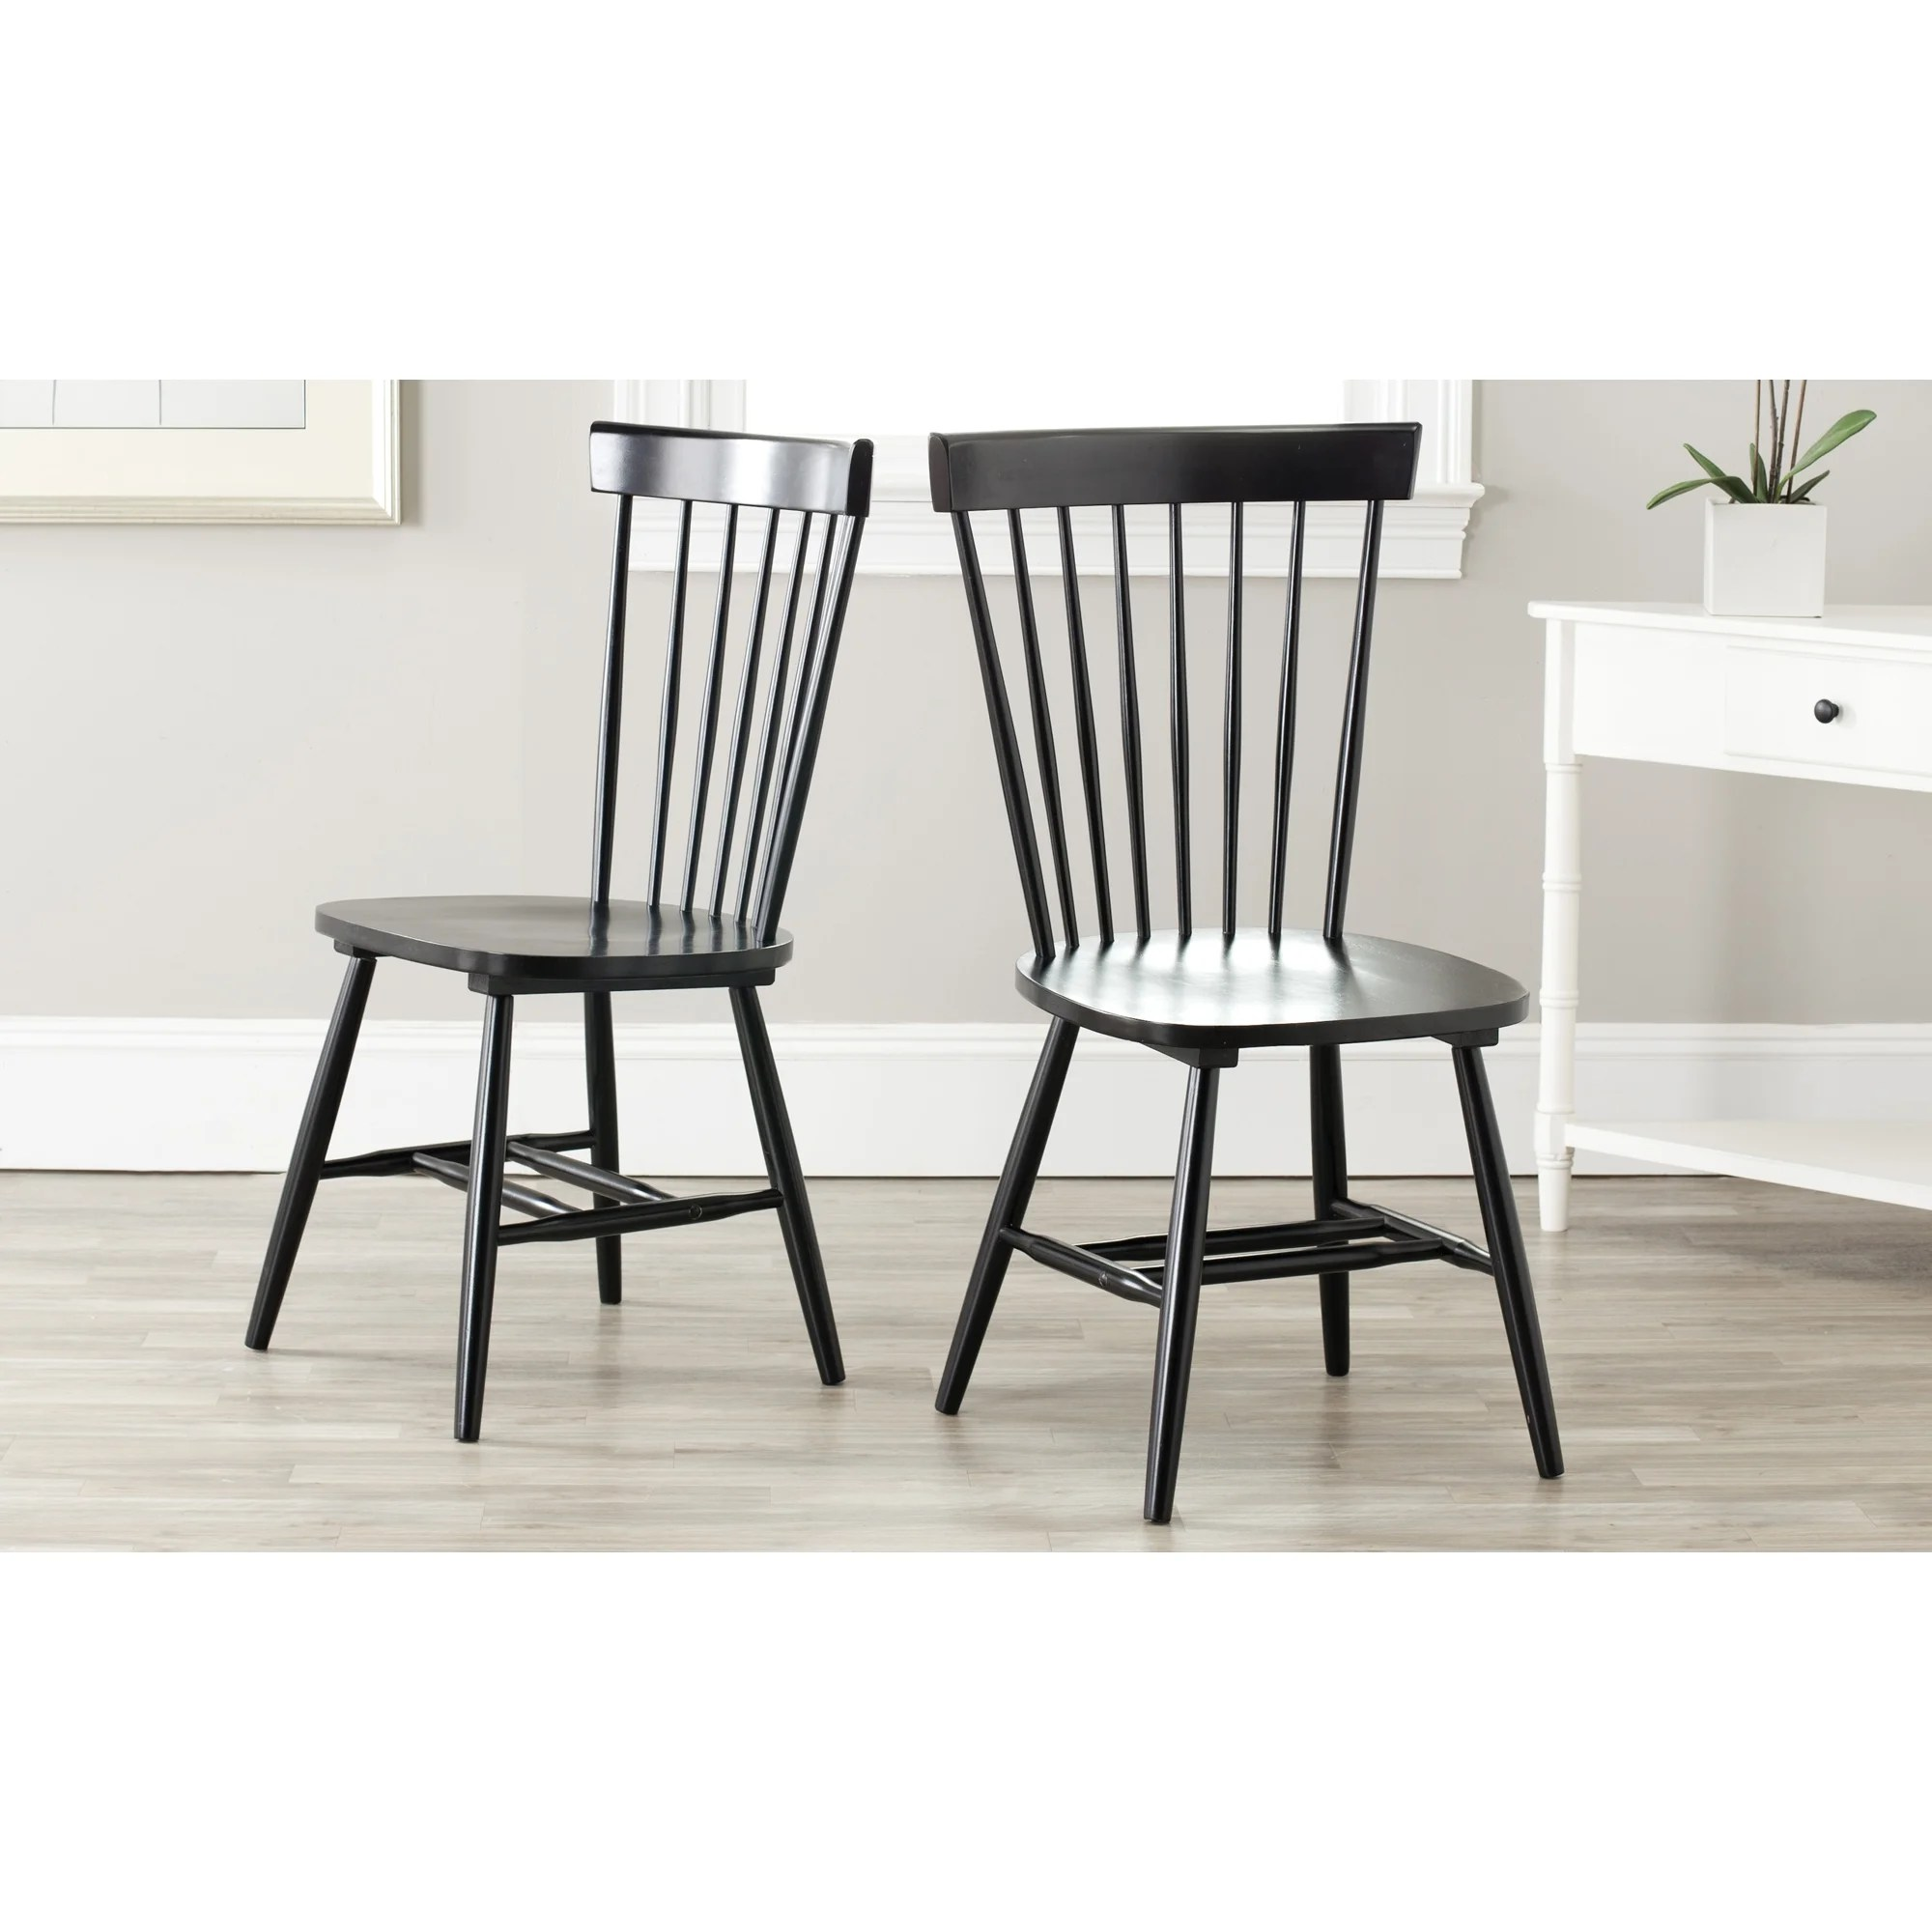 Windsor Chairs Black Safavieh Country Classic Dining Country Lifestyle Spindle Back Black Dining Chairs Set Of 2